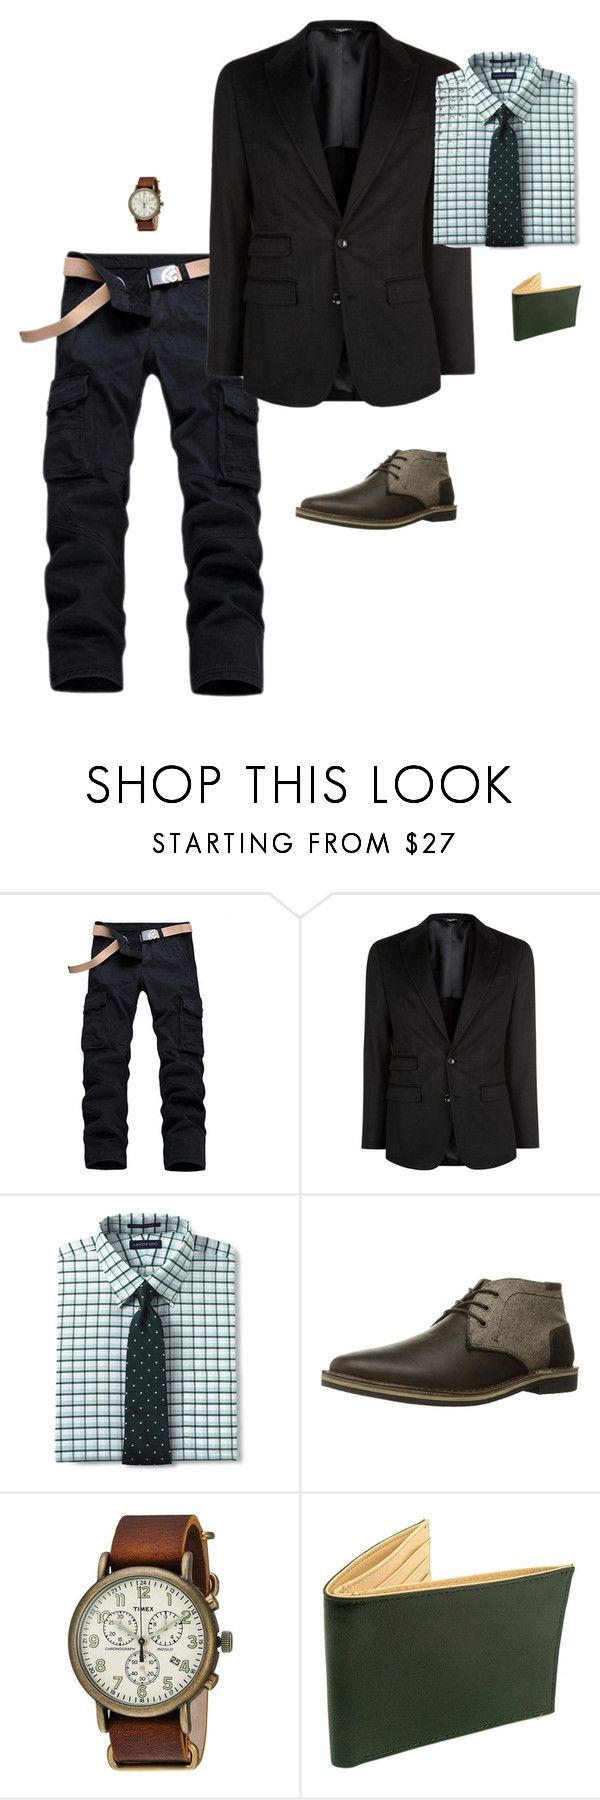 """First MIX"" by kenske on Polyvore featuring Dolce&Gabbana, Lands' End, Steve Madden, Timex, Tusk, men's fashion and menswear"